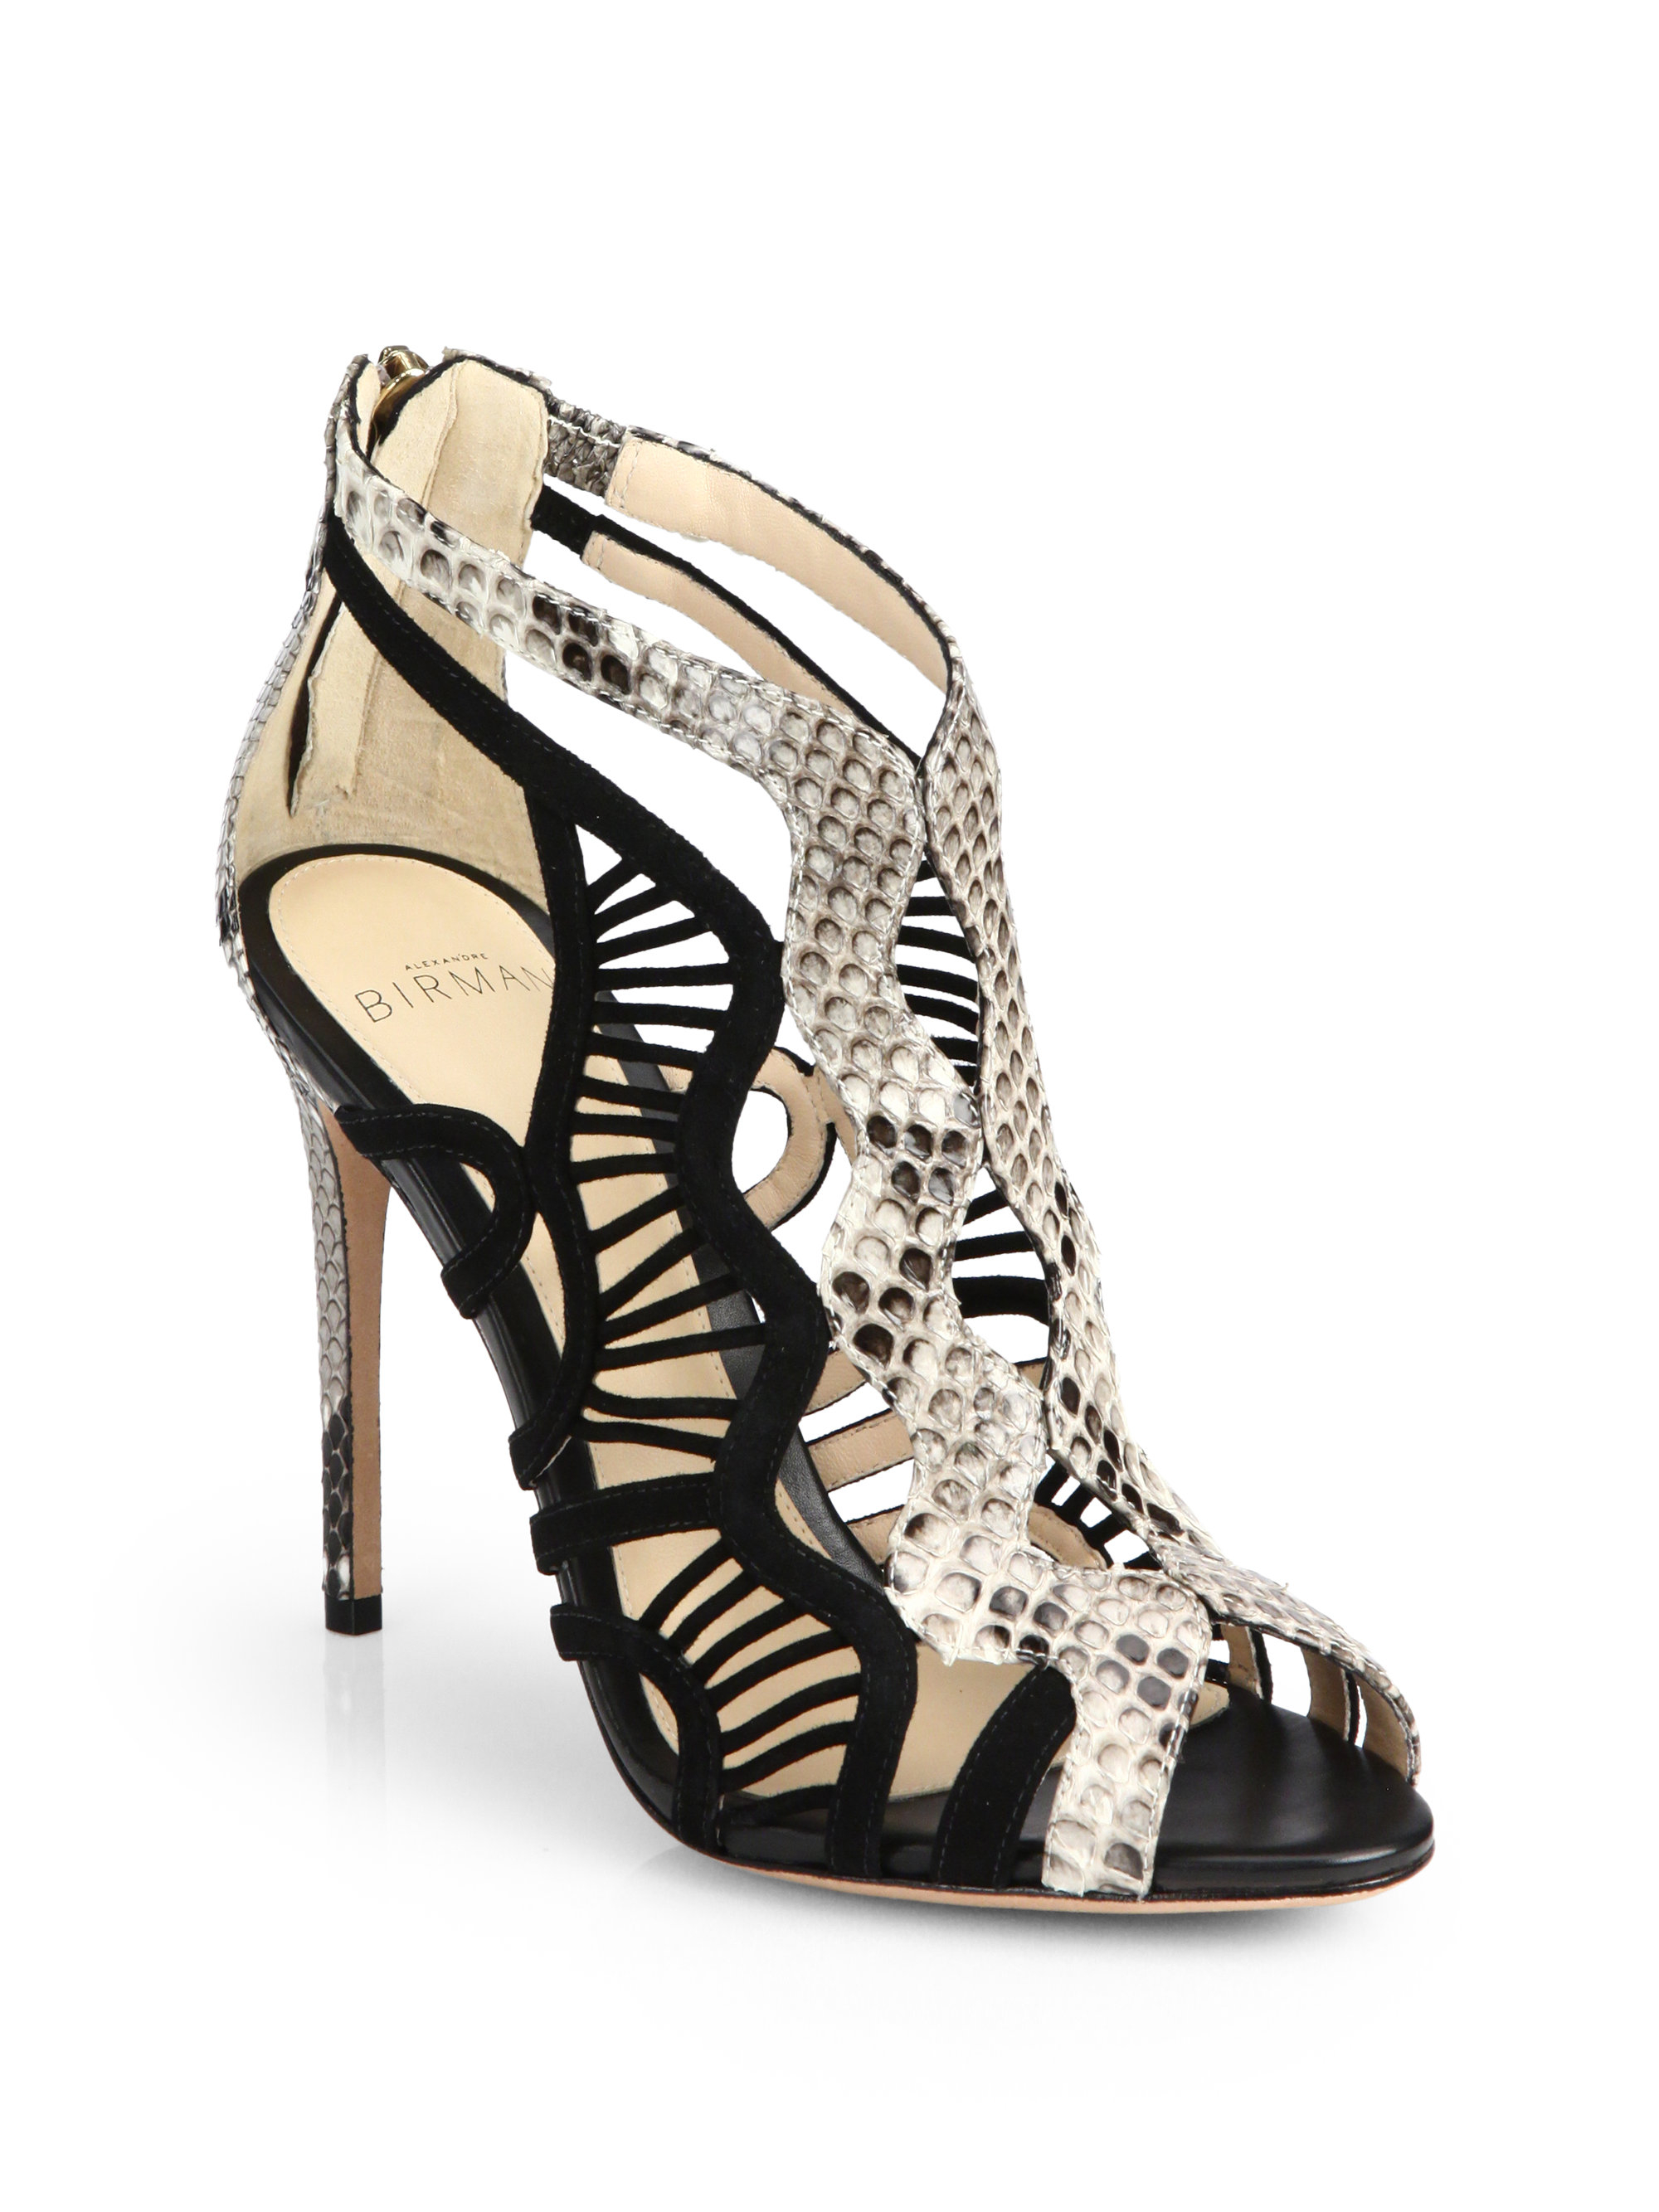 Alexandre Birman Snakeskin Caged Booties shop online cheap sale marketable shipping discount authentic dV6uTh